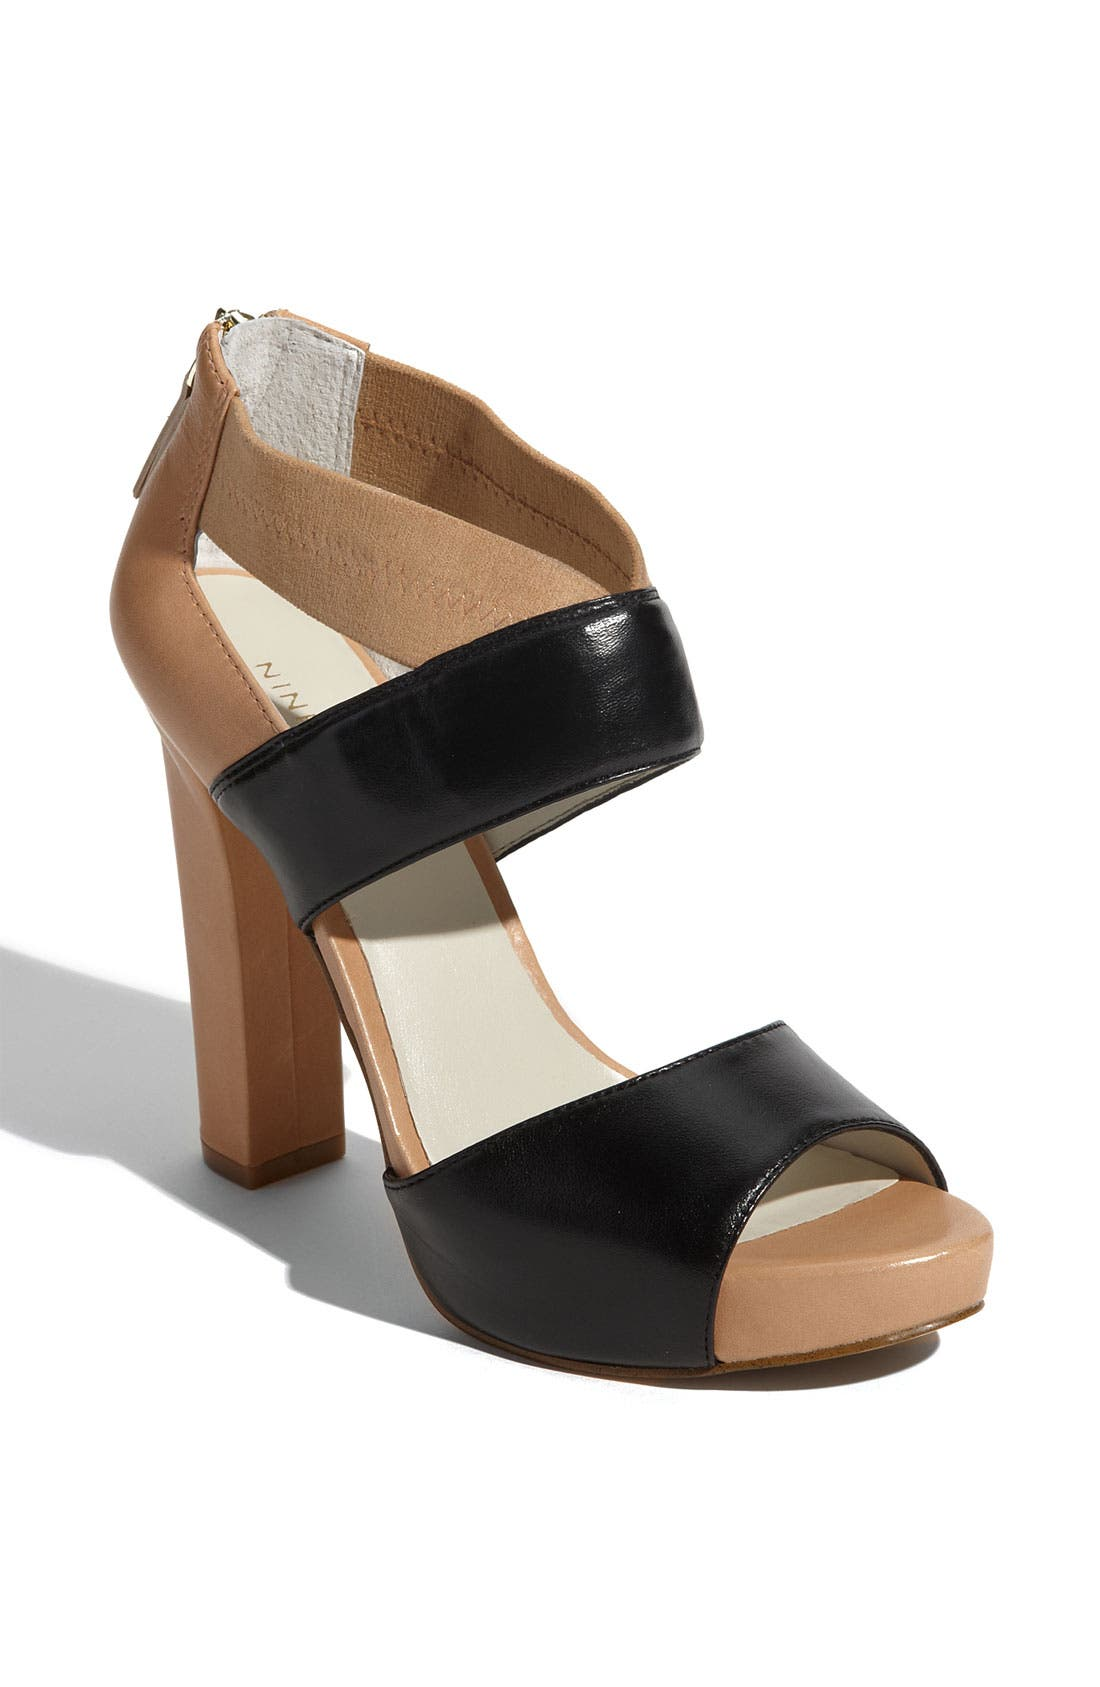 Alternate Image 1 Selected - Nine West 'Stylin' Sandal